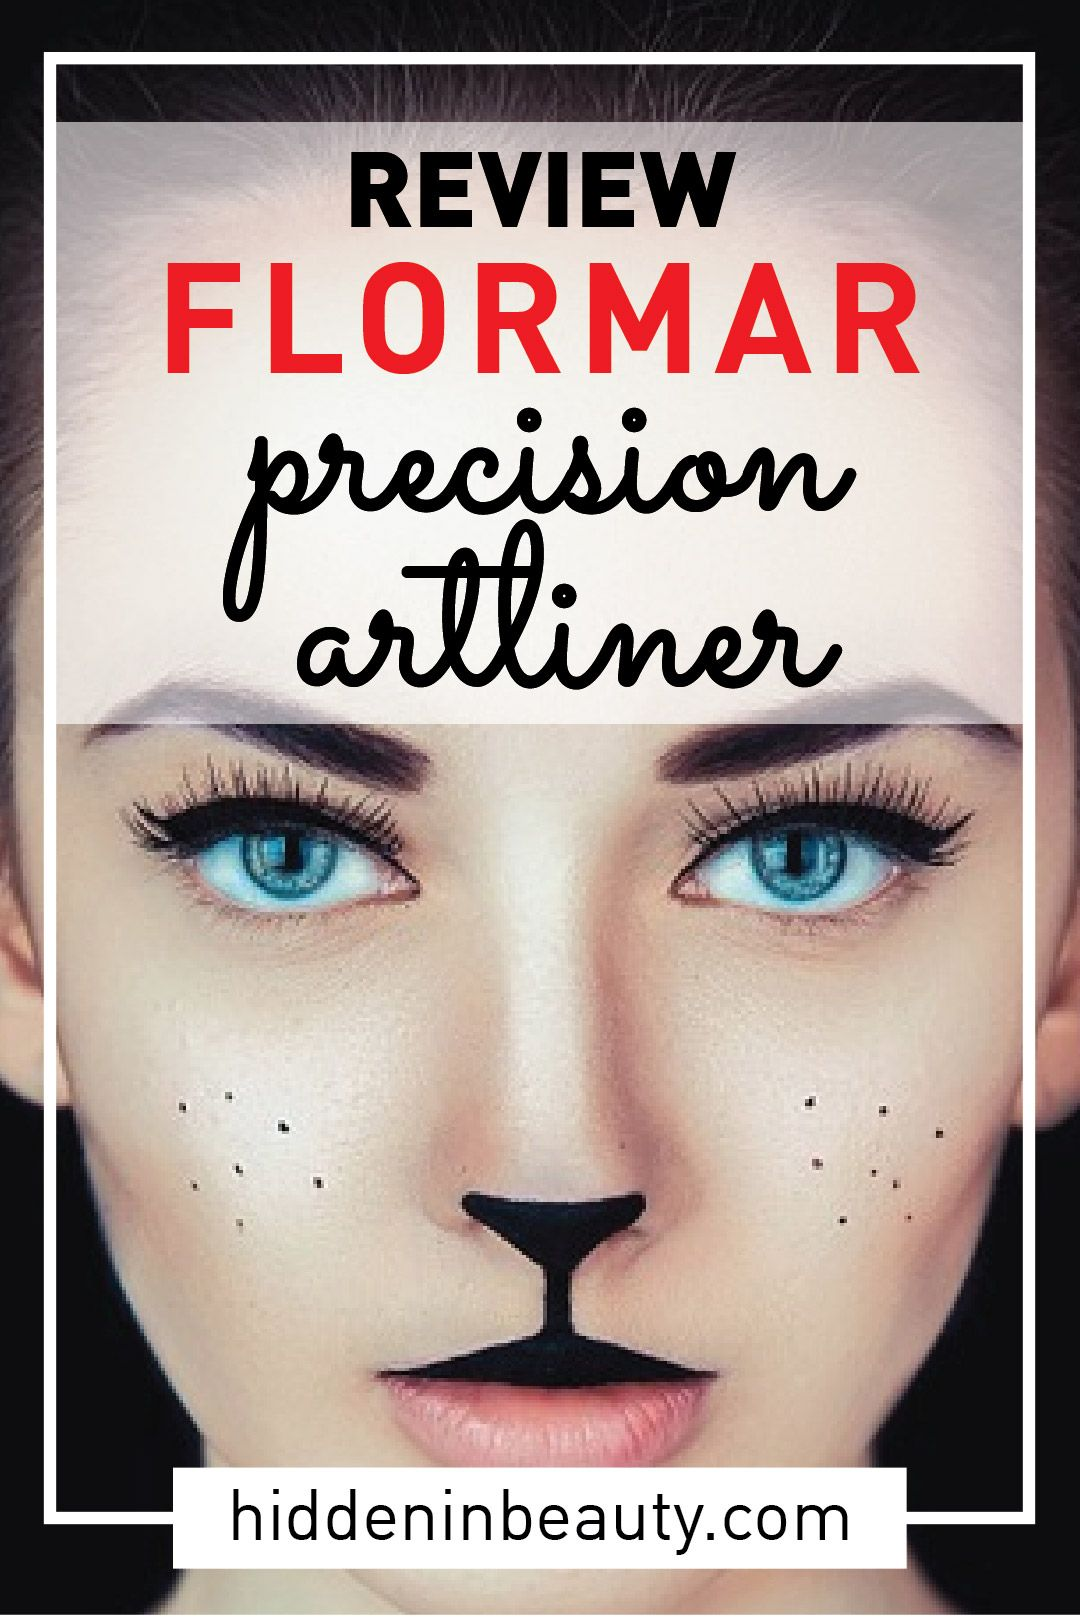 Review Flormar Makeup without eyeliner, Beauty, Eye makeup